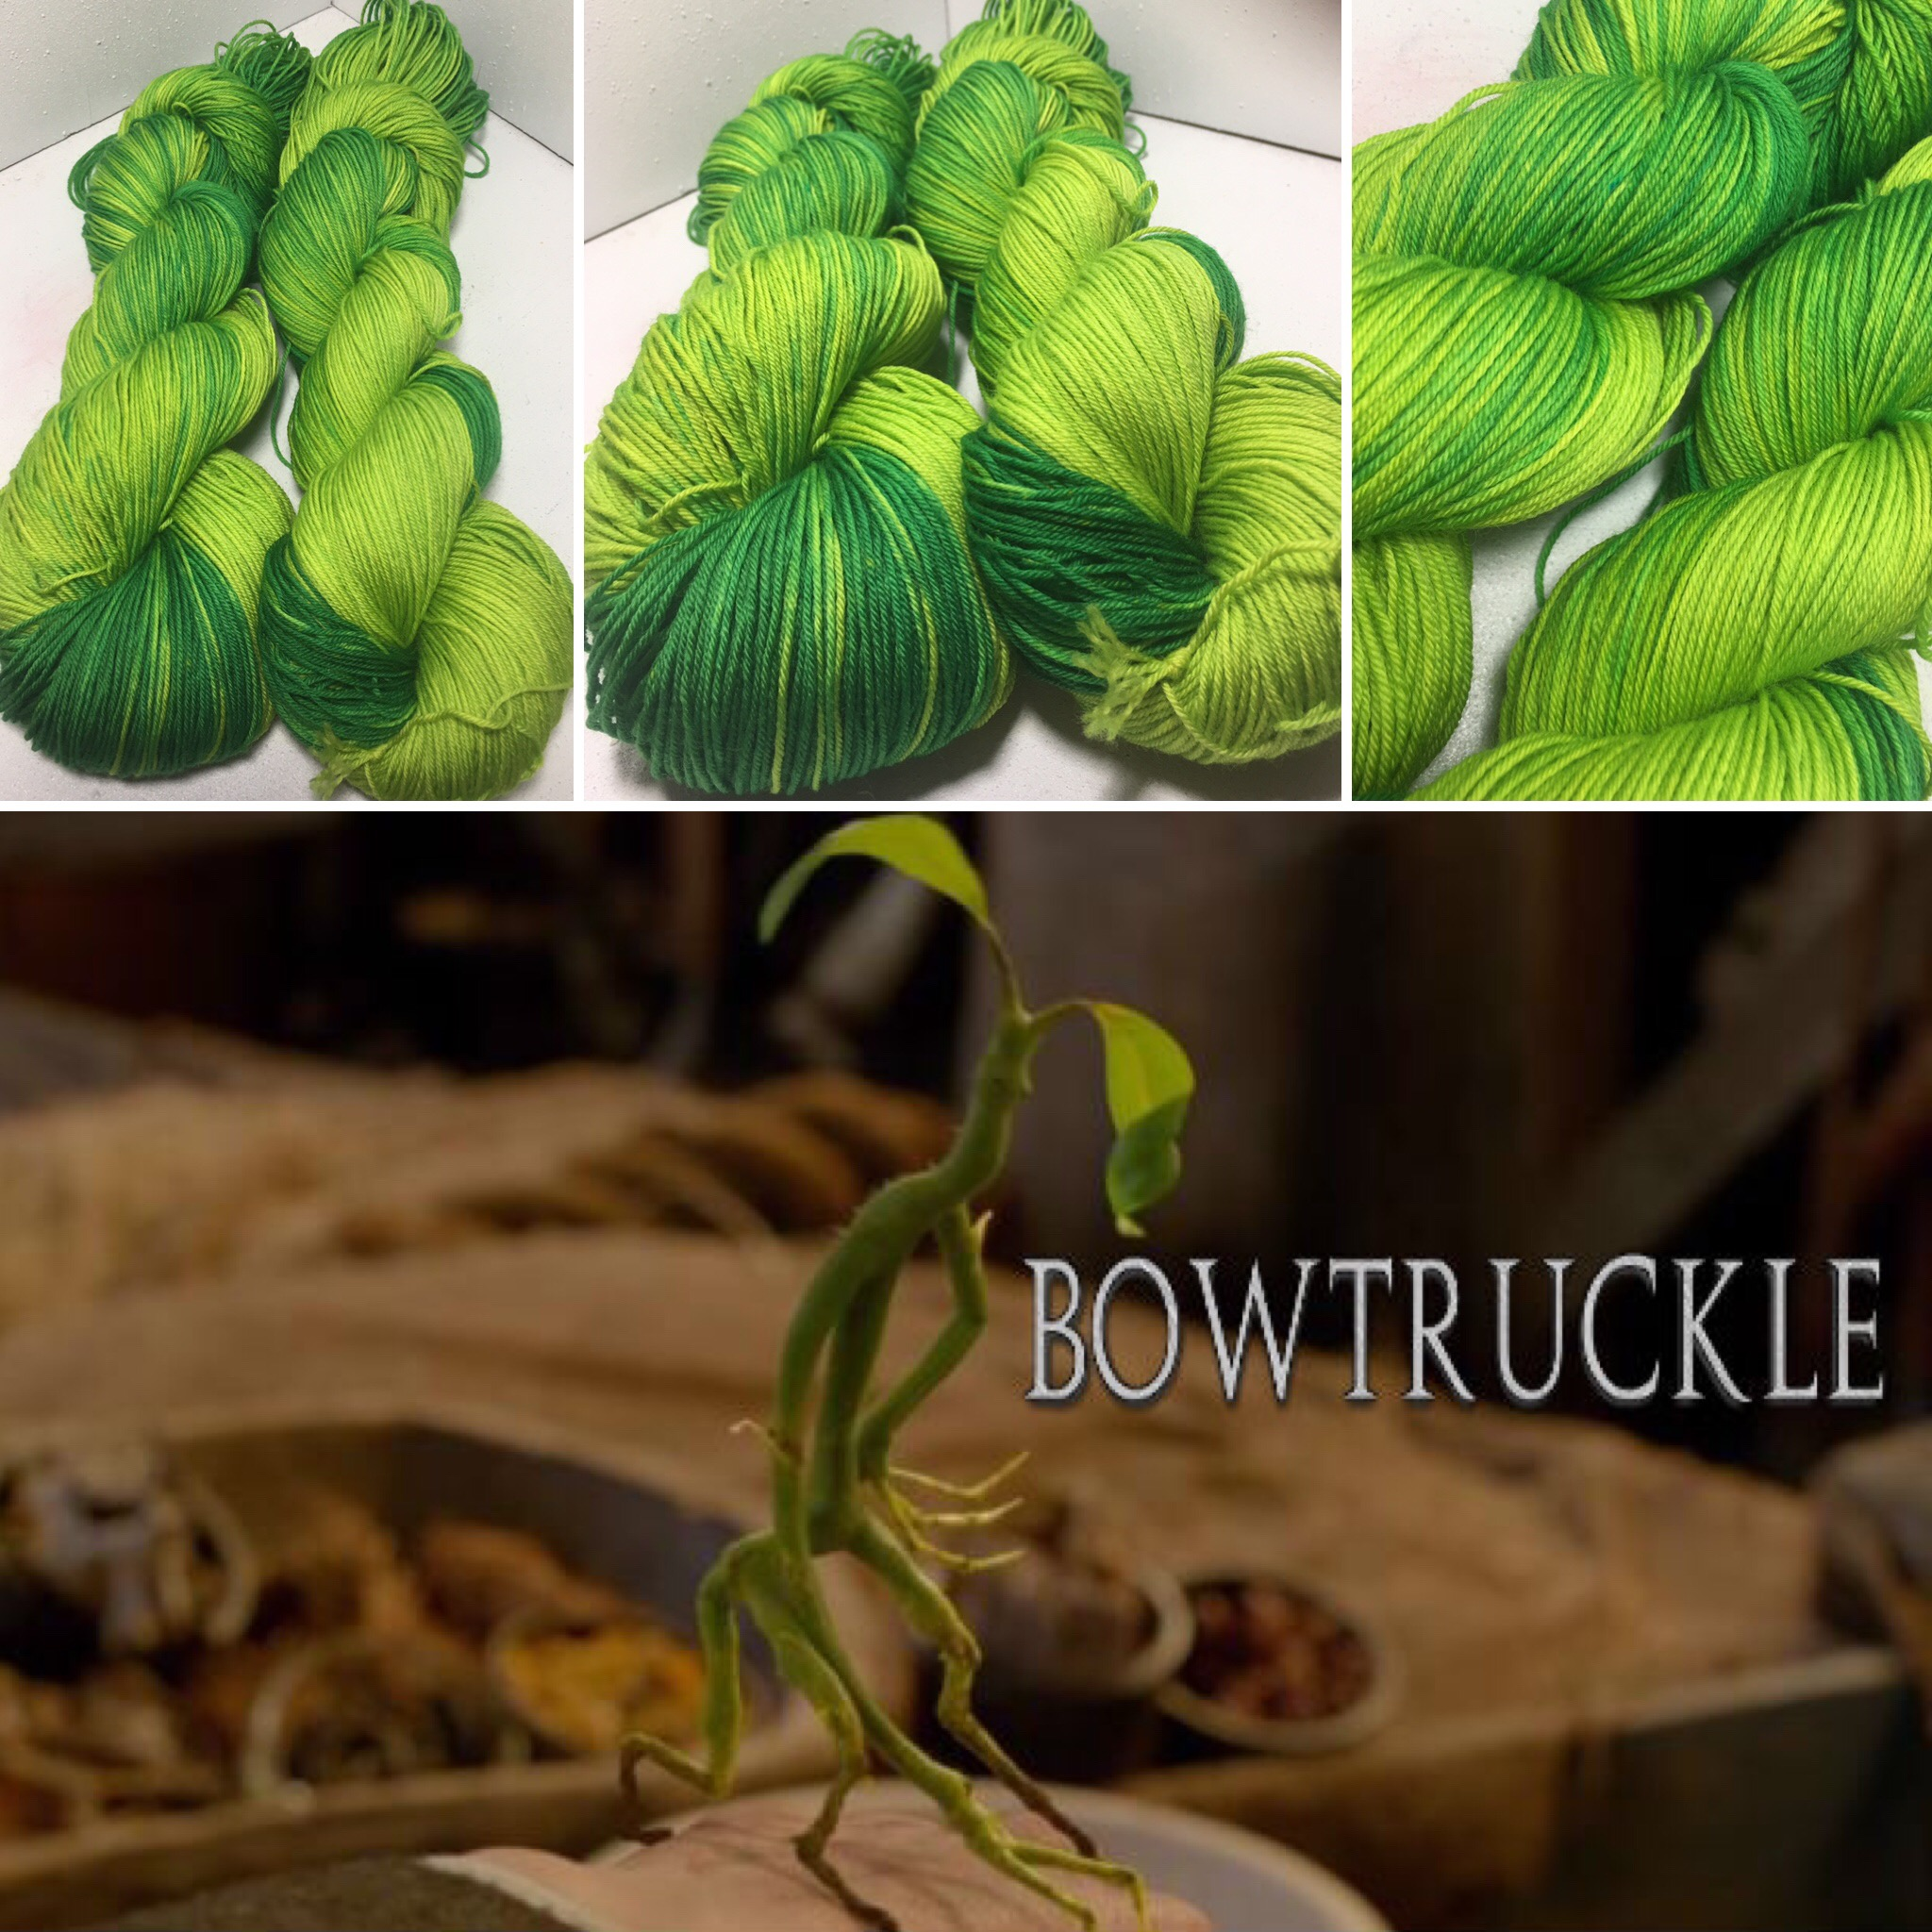 https://www.etsy.com/listing/472910216/bowtruckle-100-superwash-merino